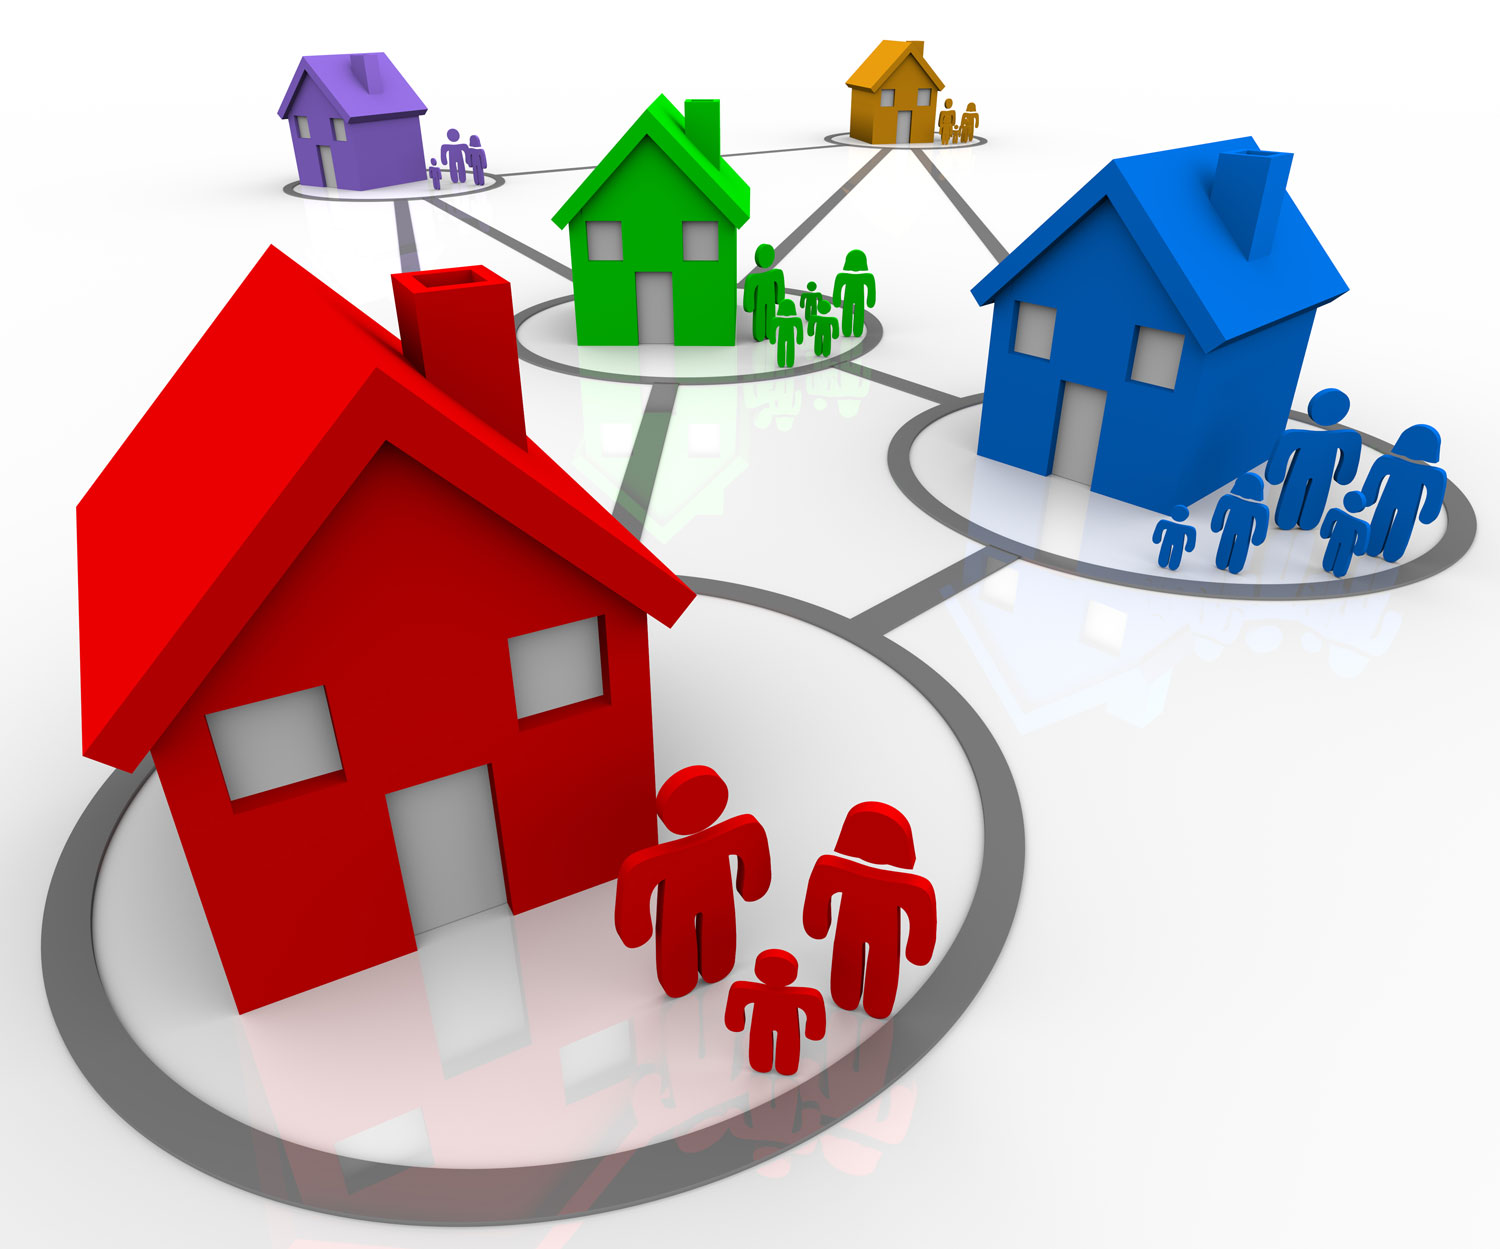 bigstock-Connected-Families-In-Neighbor-for-web-7437680